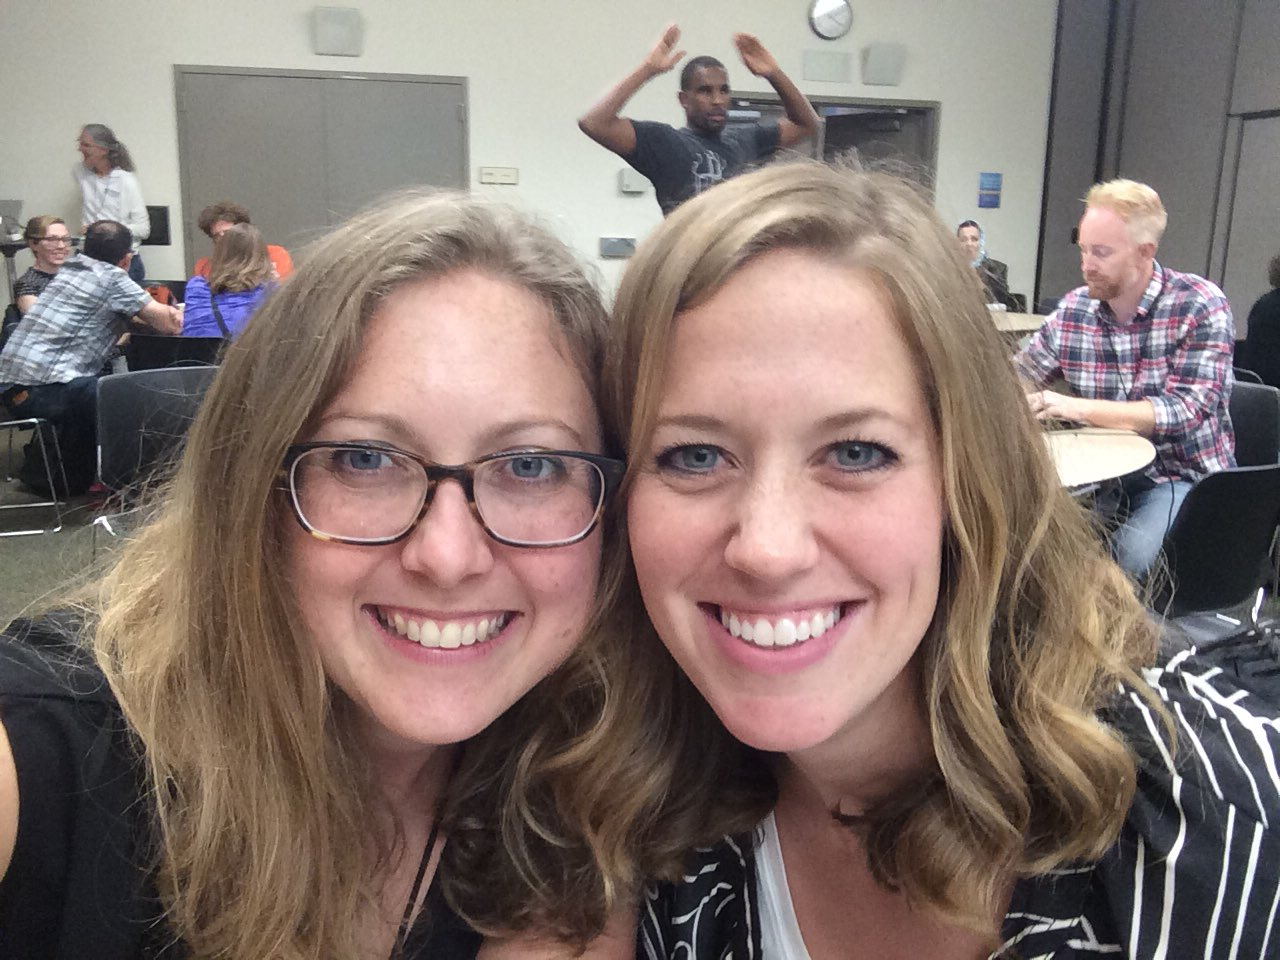 Jazzed to learn about #digcit at #2016DML with @sarahck13! https://t.co/KGBgTo5mwh